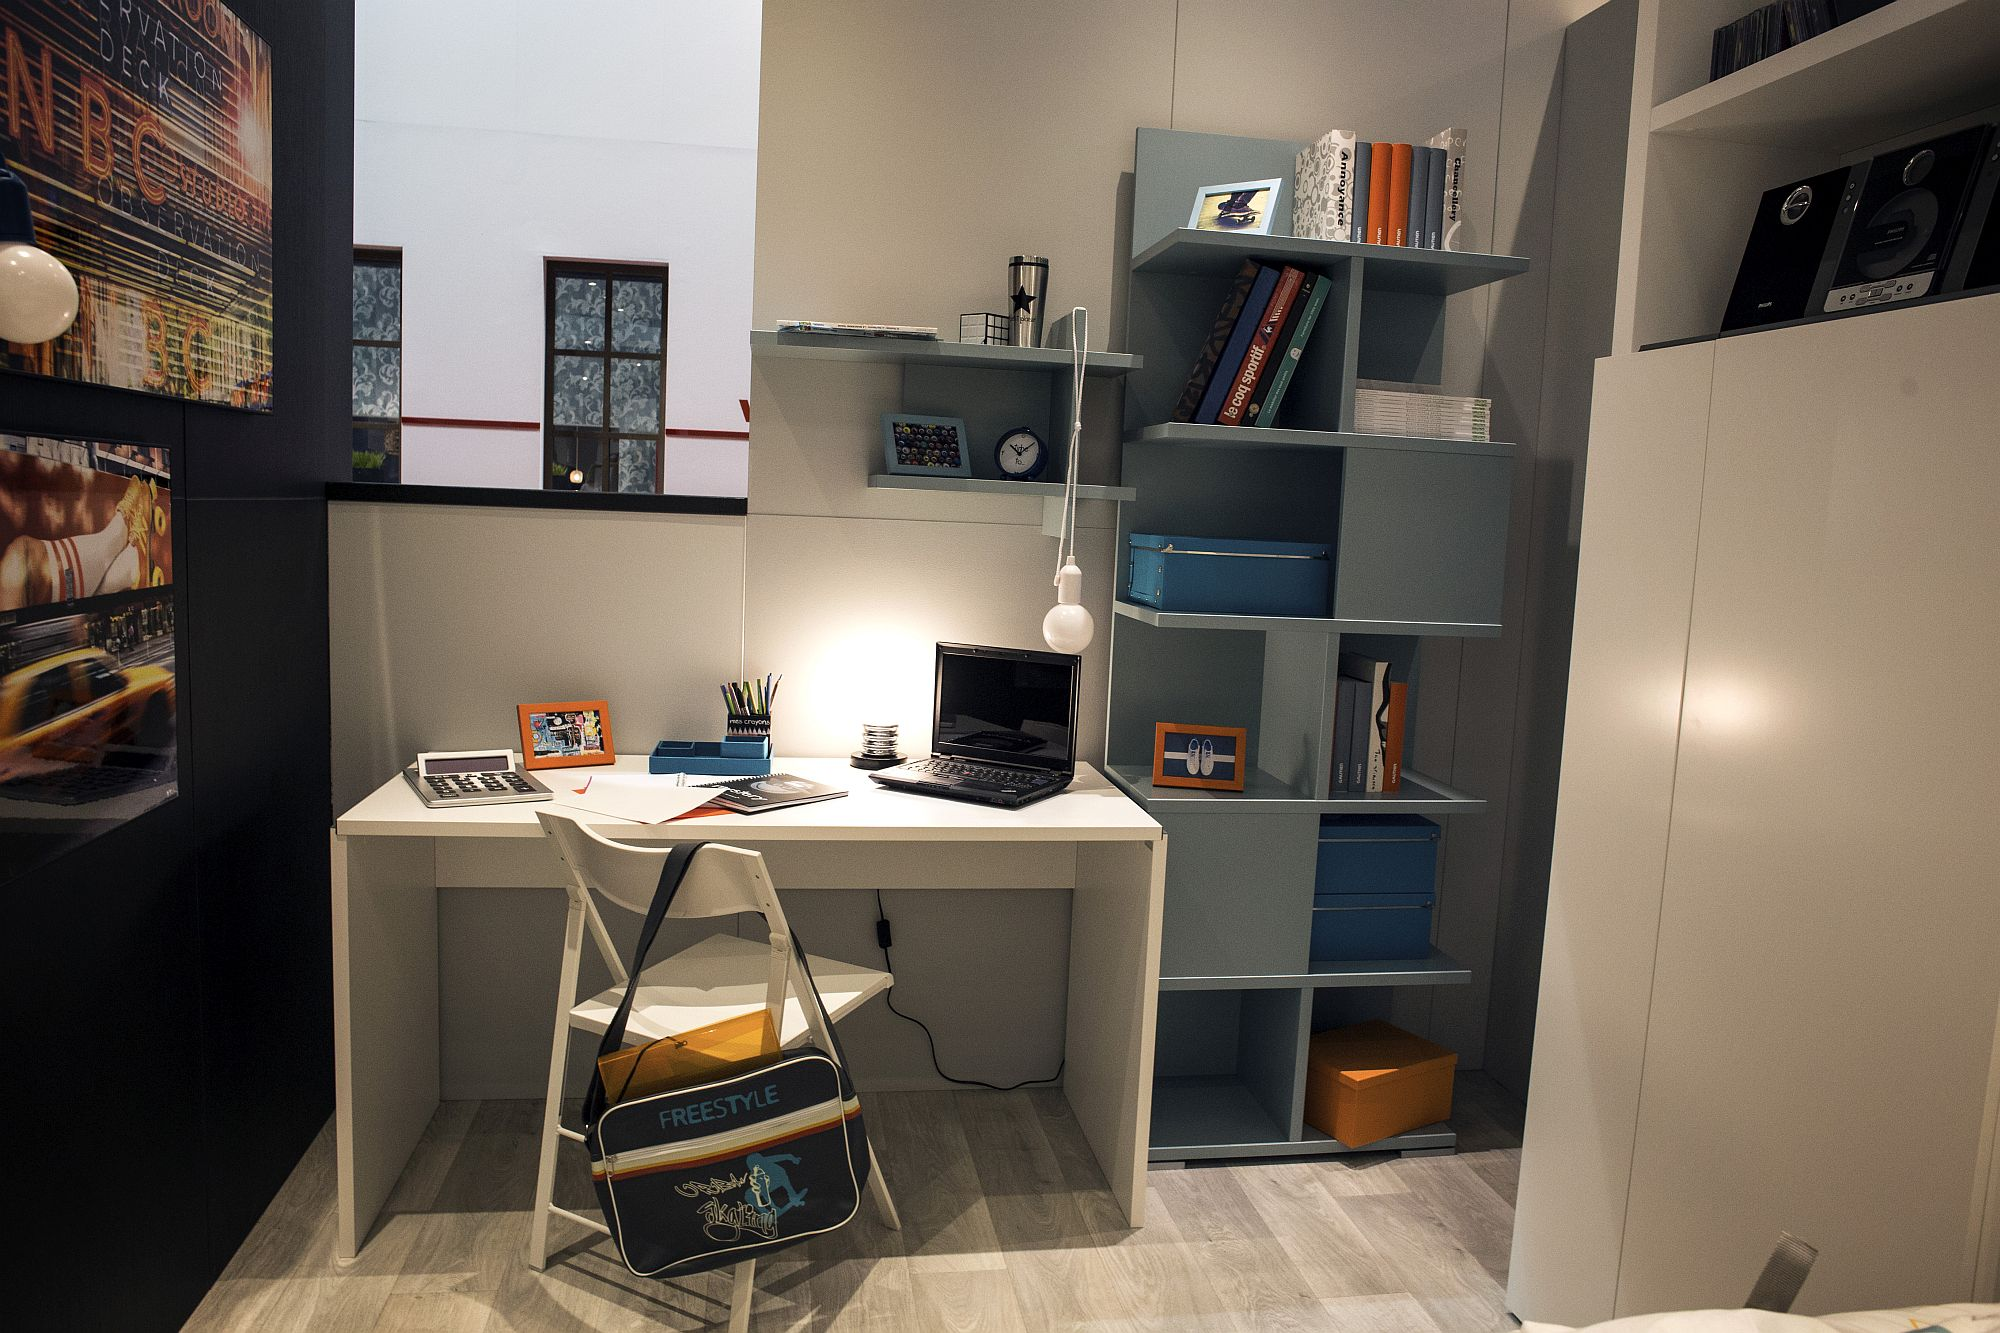 Freestanding unit of shelves next to the homework station